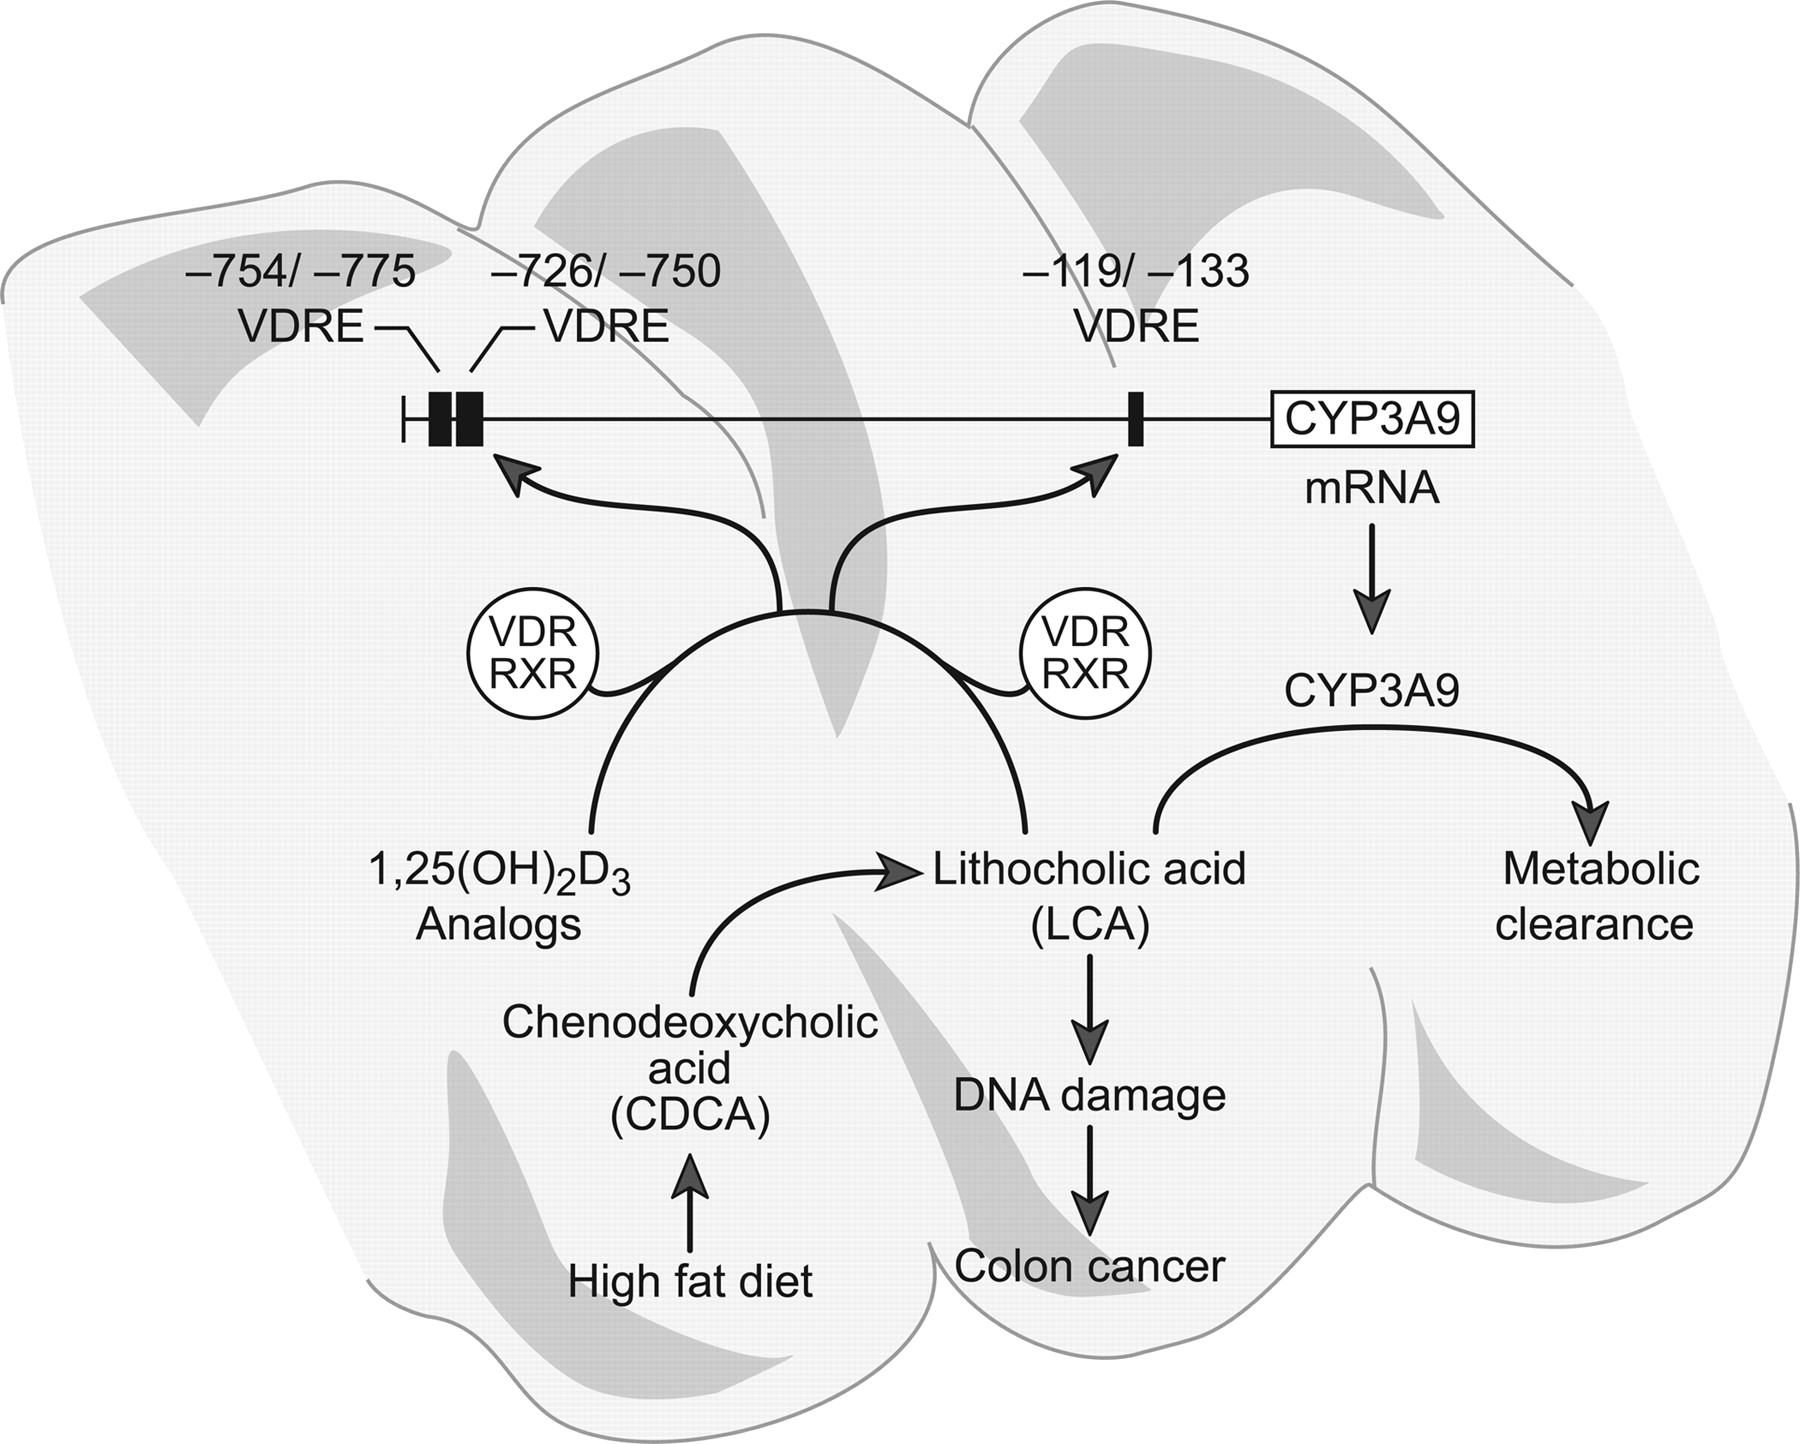 19nor 1 25 Dihydroxyvitamin D2 Specifically Induces Cyp3a9